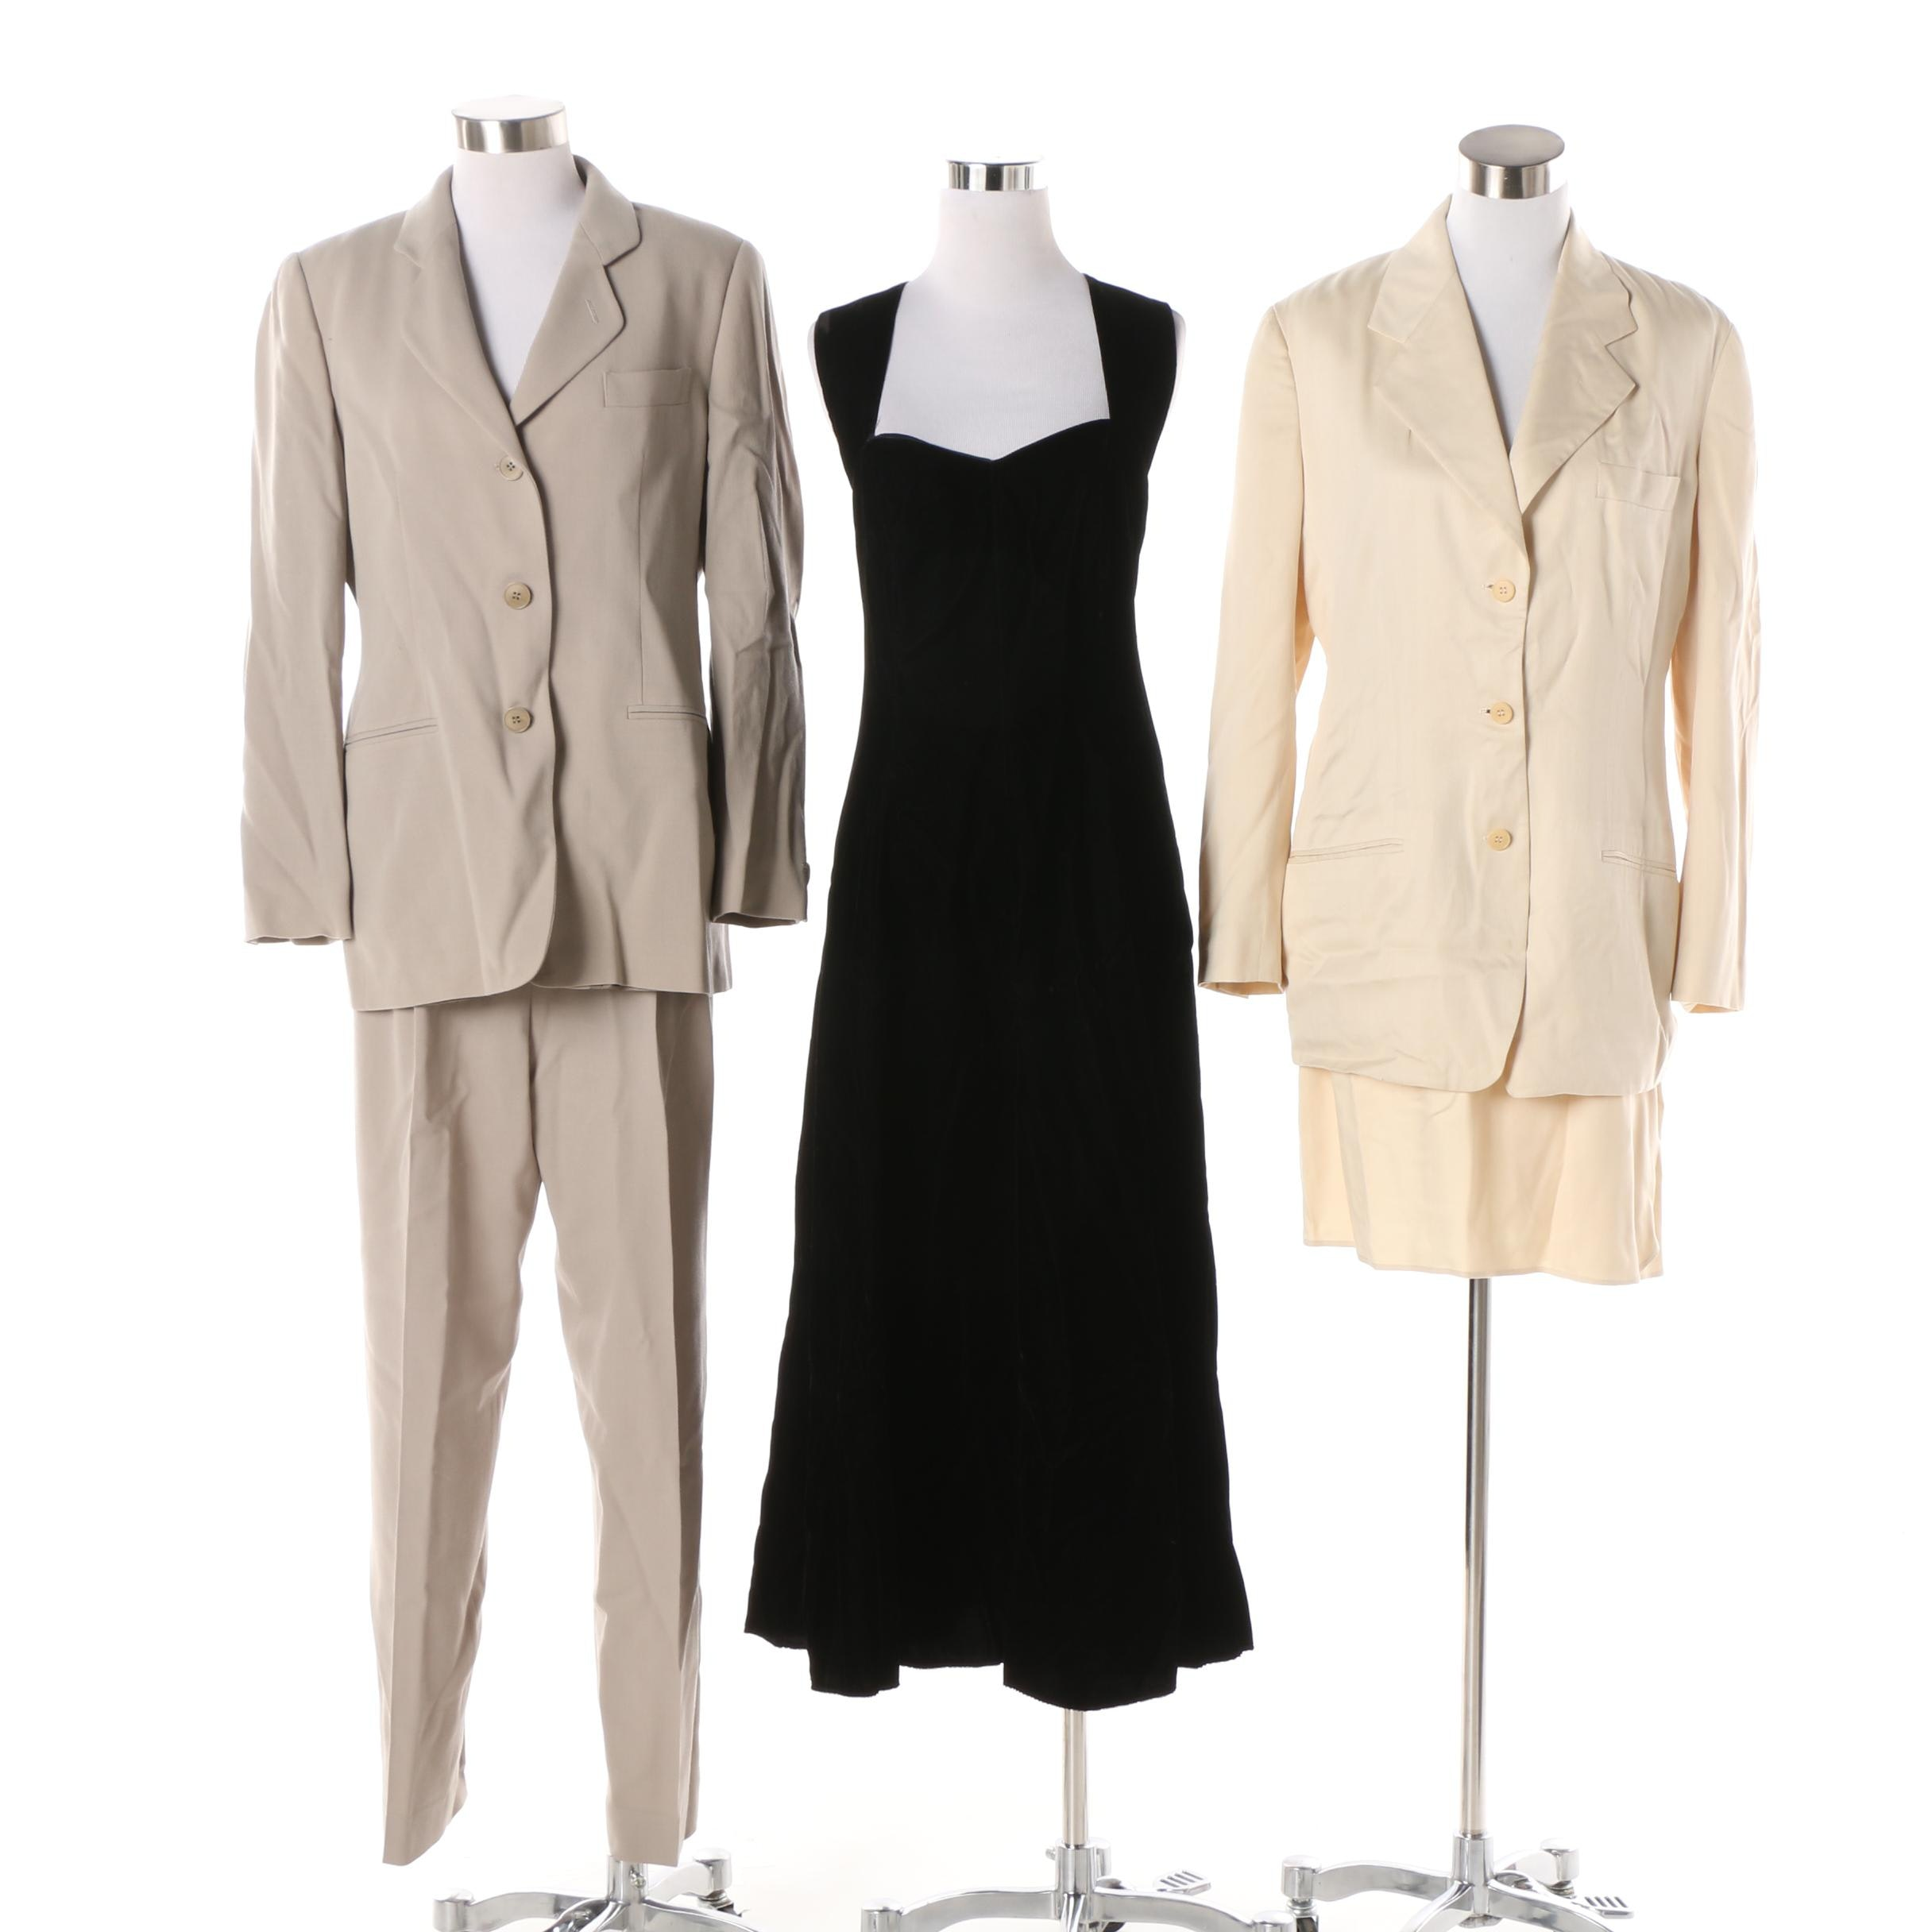 Women's Vintage Suits and Dress including Giorgio Armani and Calvin Klein